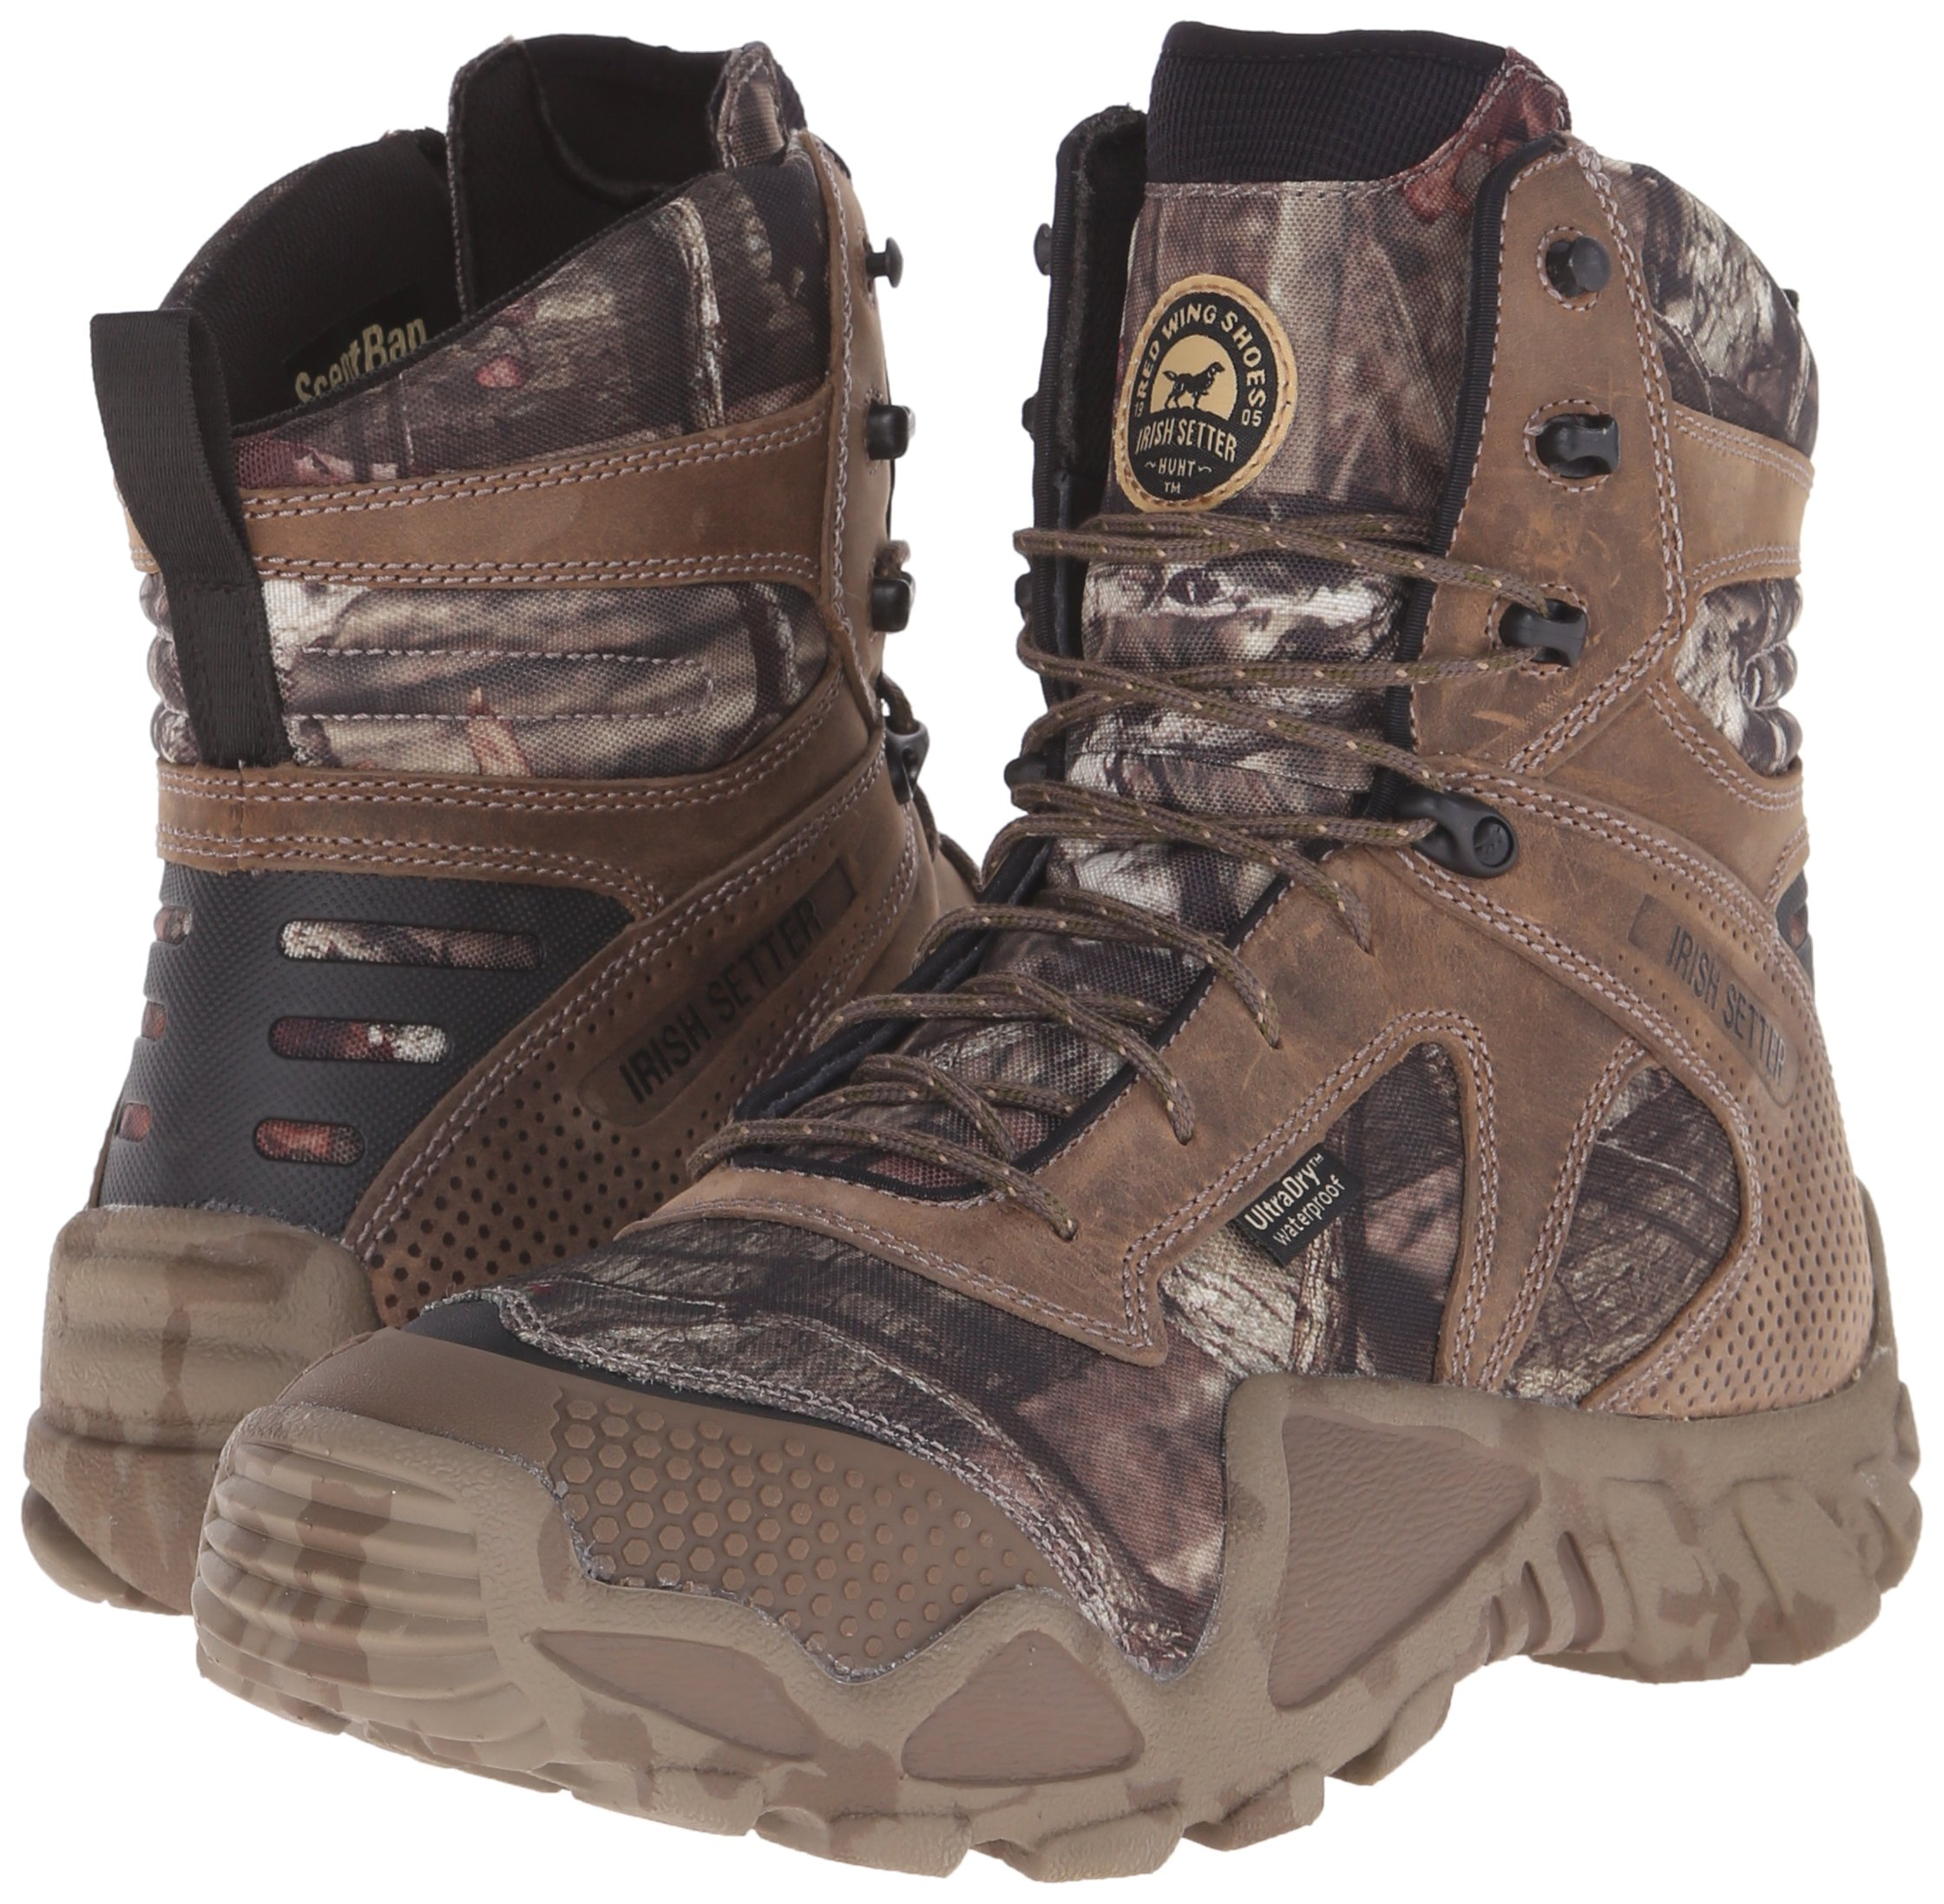 Irish Setter Men's 2868 Vaprtrek Waterproof 8'' Hunting Boot, Mossy Oak Break Up Infinity Camouflage,10 EE US by Irish Setter (Image #6)